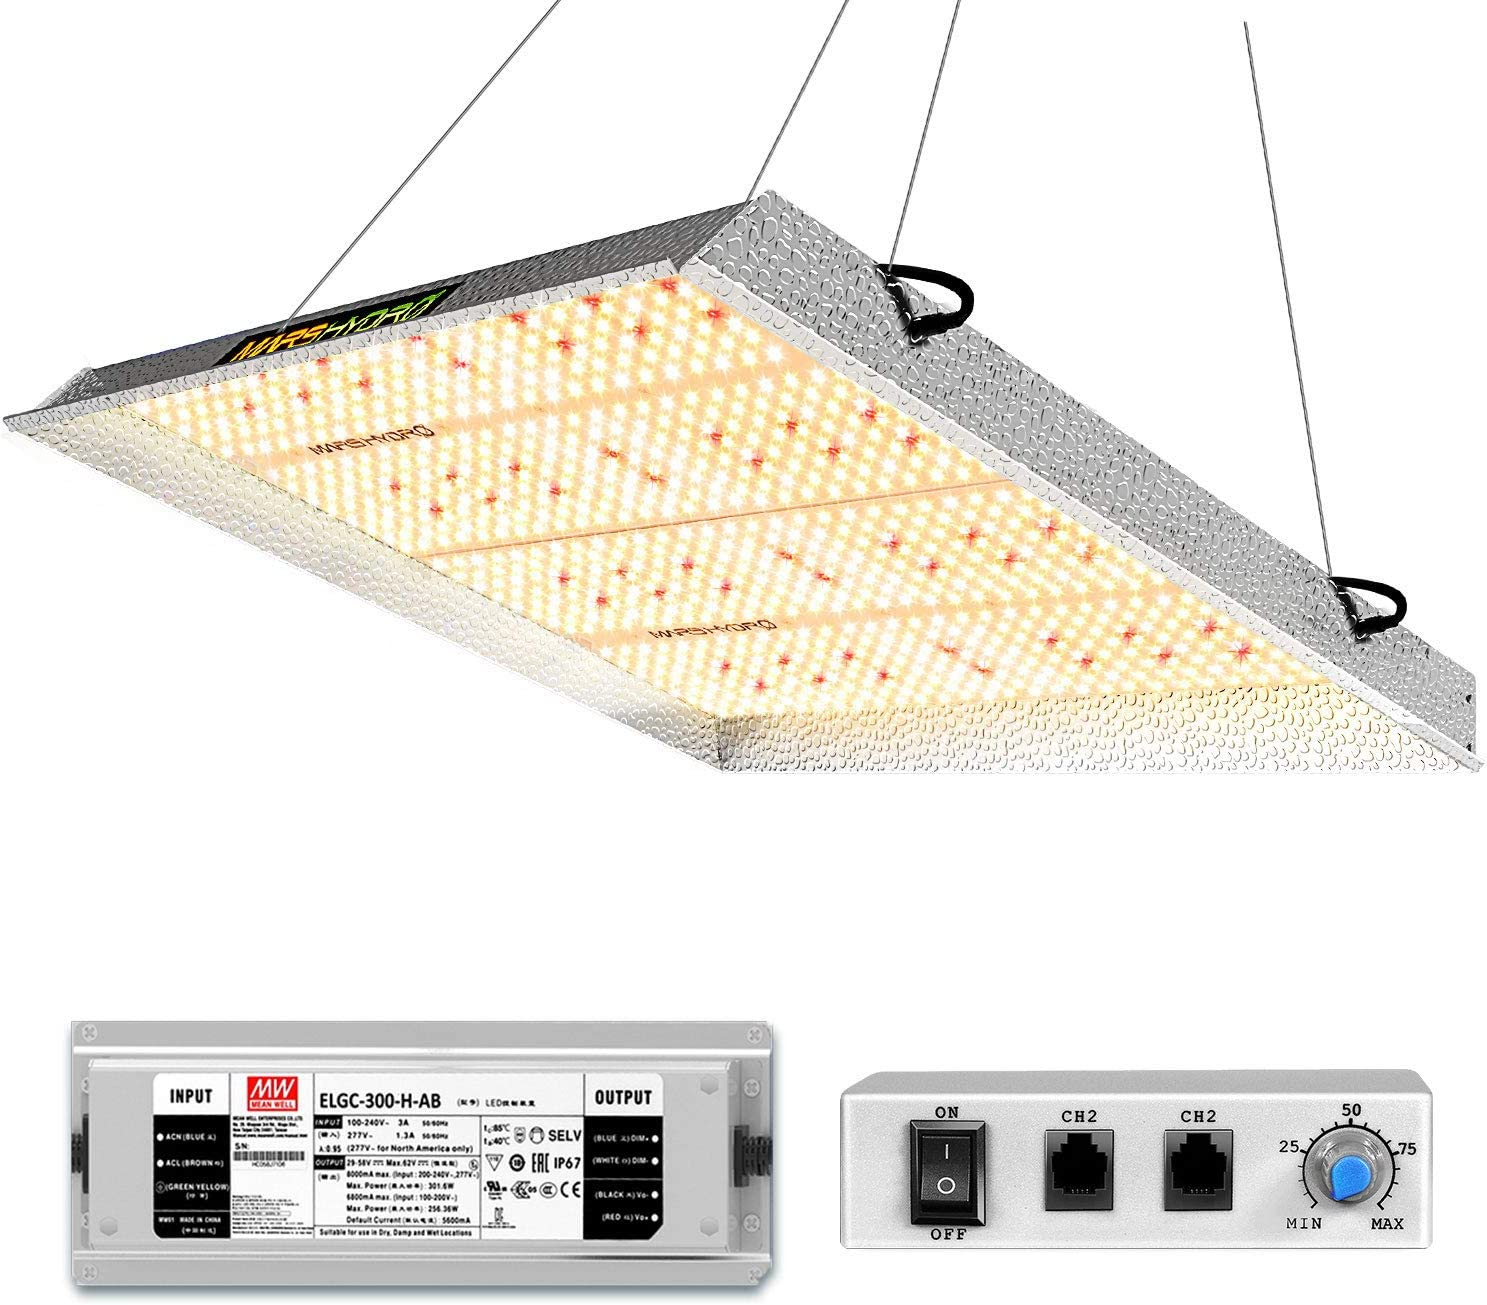 MARS HYDRO TS 3000W LED NEW ARRIVAL 大好評です Grow Light 4x4 ft Plants 5x5 for Indoor